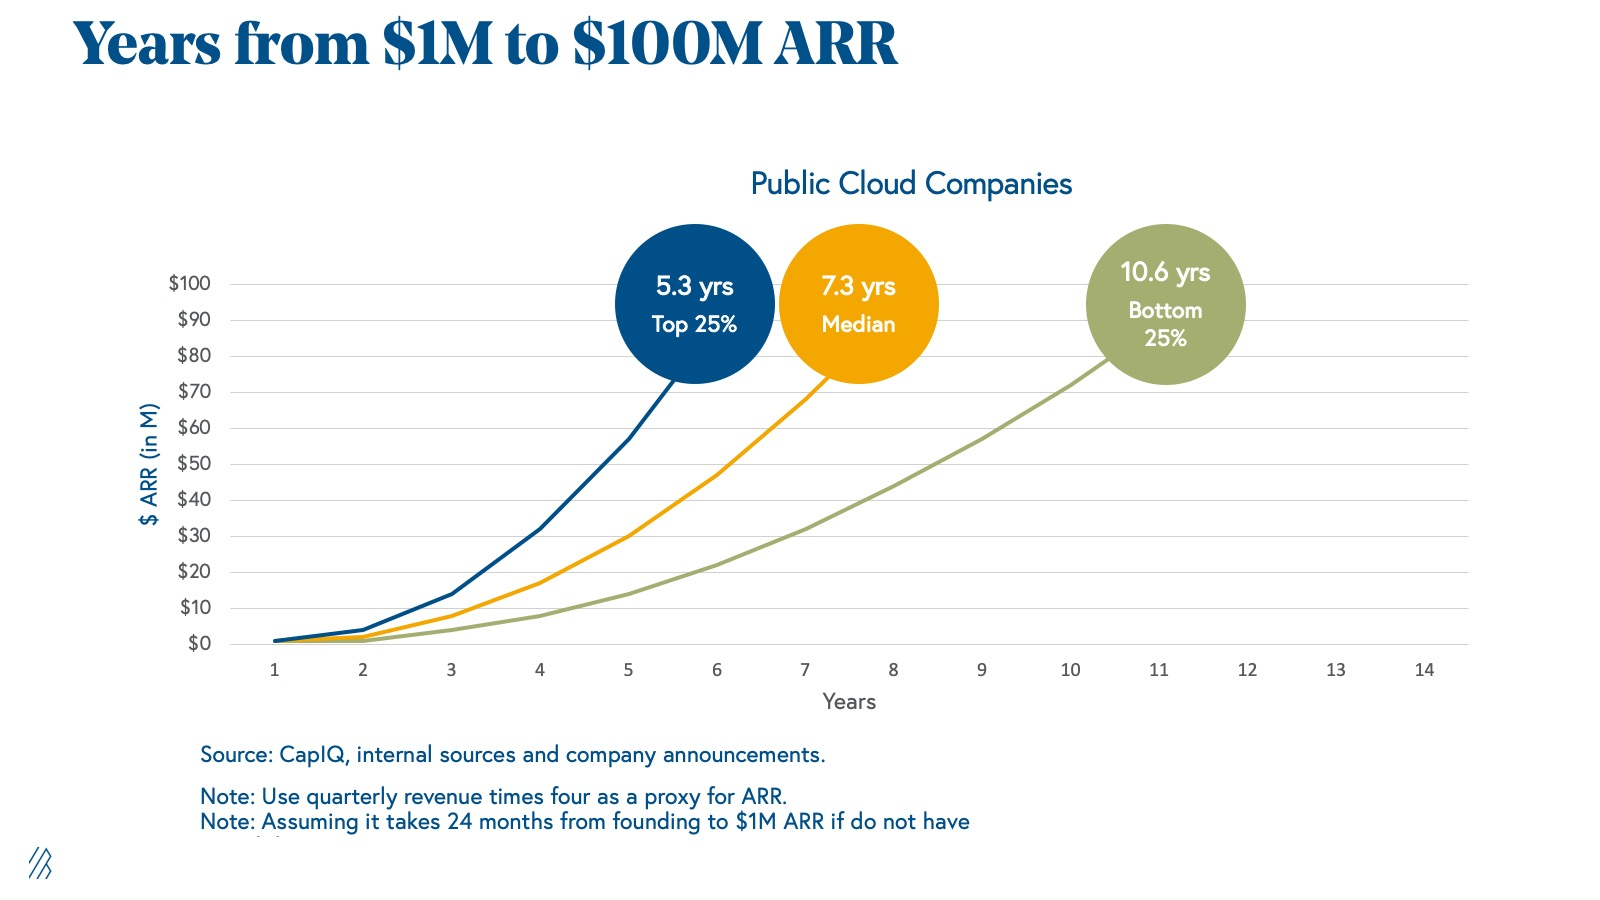 Years it took for companies to go from $1 million to $100 million AAR